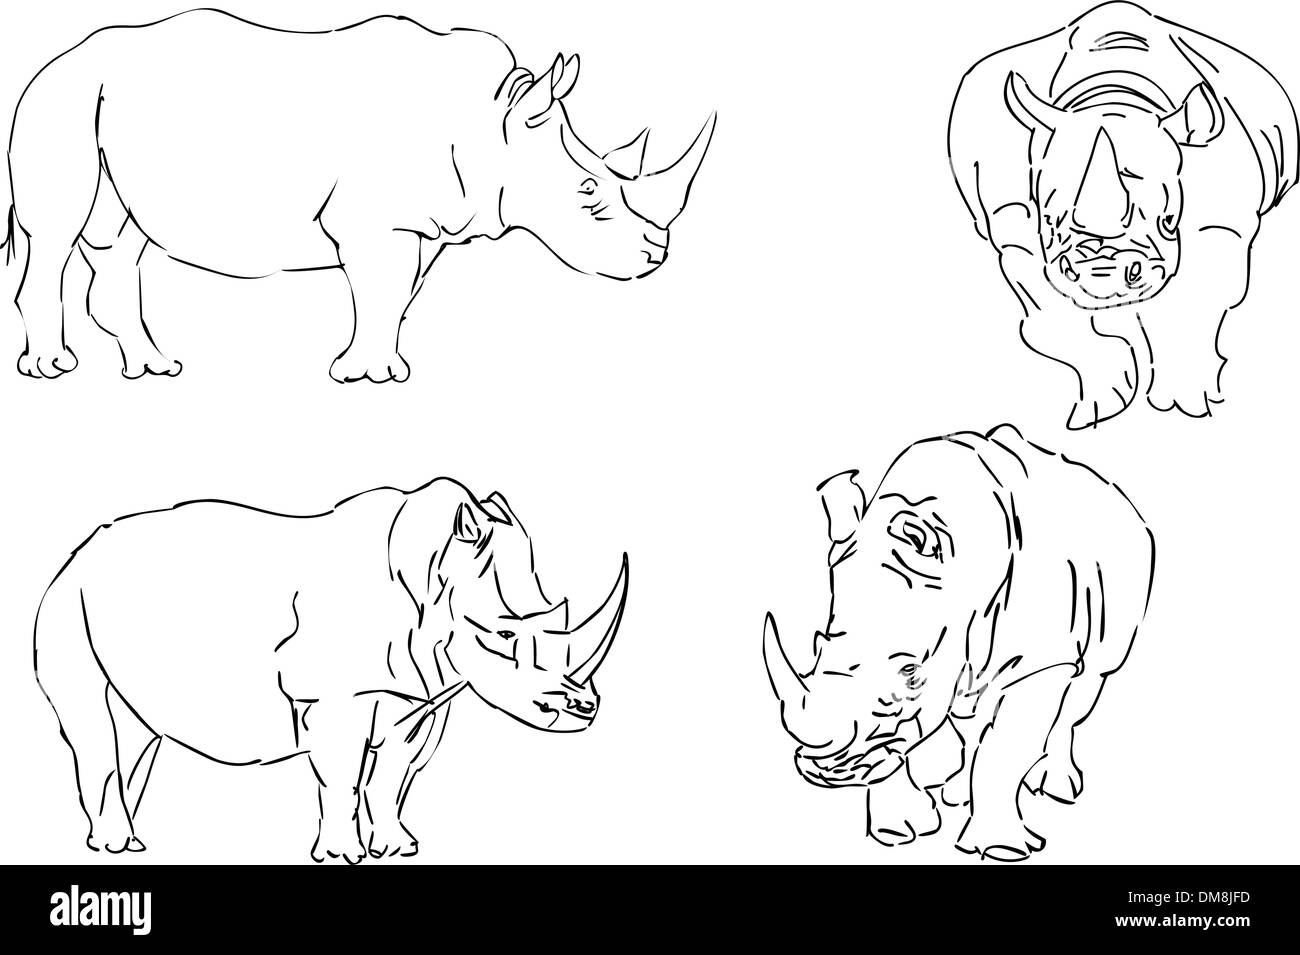 vector illustration sketch of rhino - Stock Image